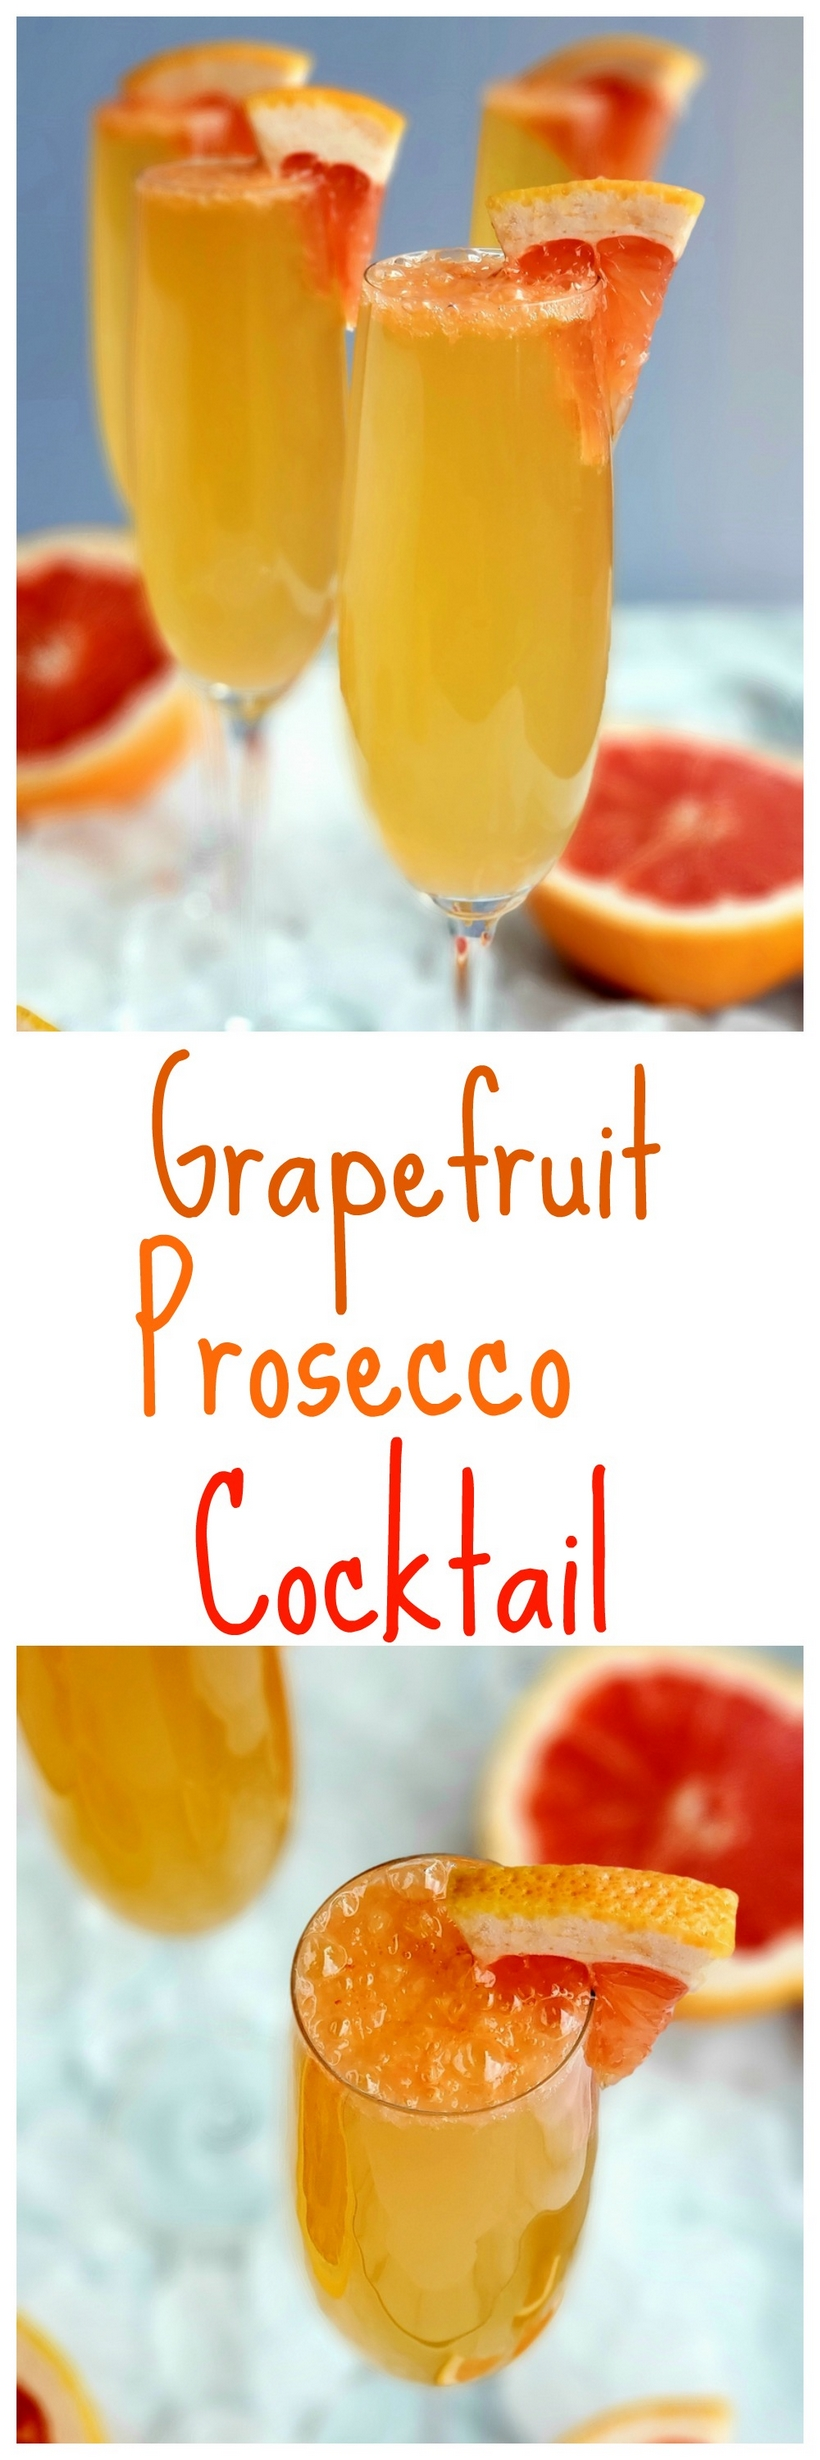 Serve these Grapefruit Prosecco Cocktails for brunch or on the patio for a perfectly crowd-pleasing sipping experience. #proseccococktail #grapefruit #brunchcocktail via @cmpollak1